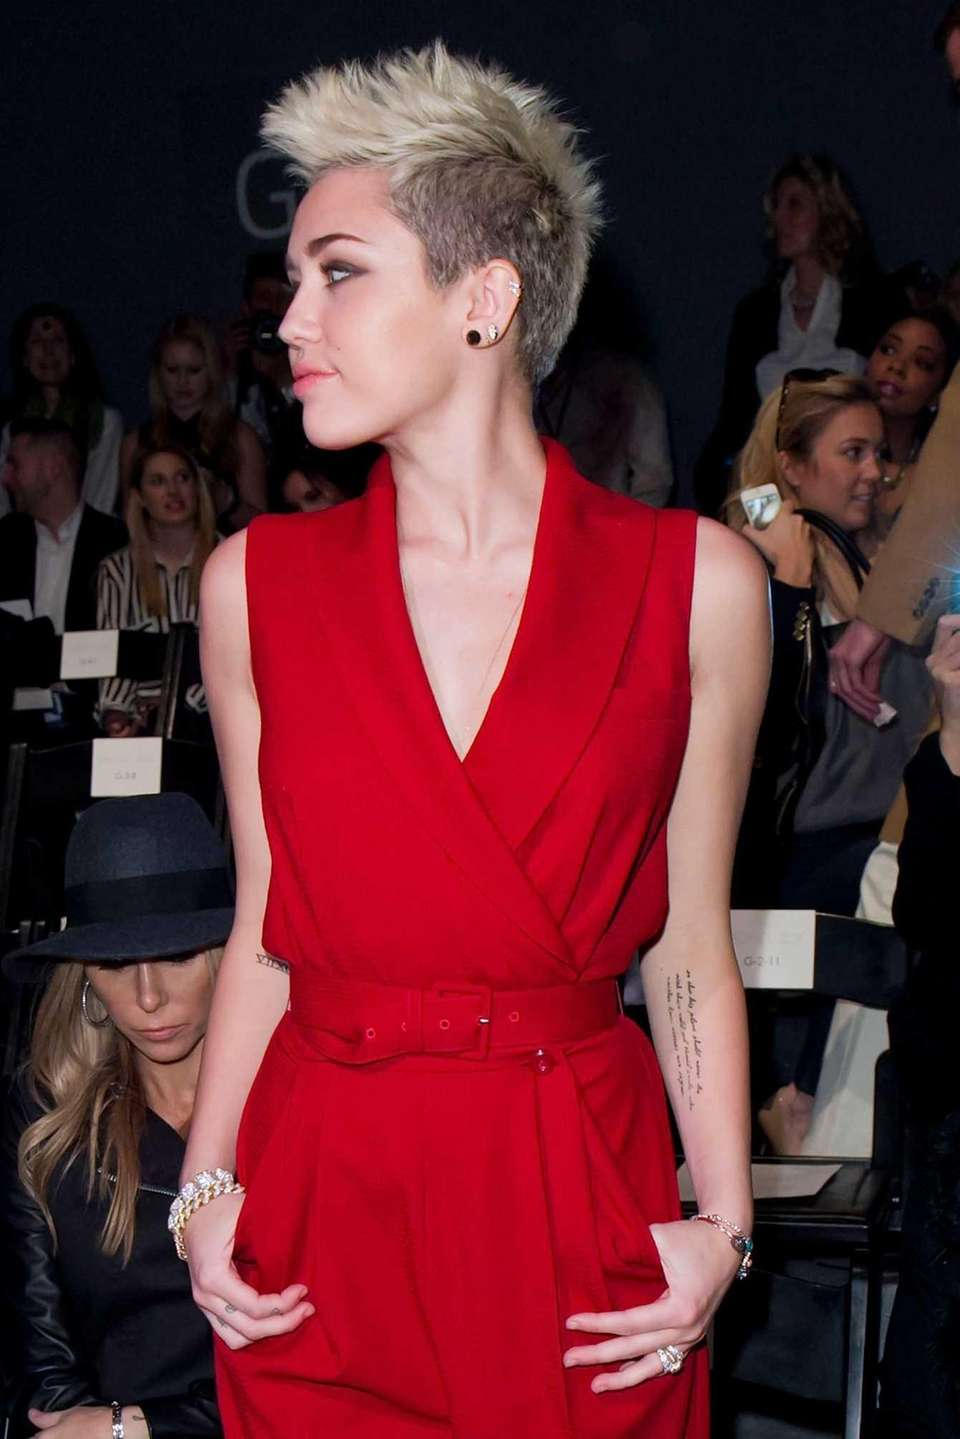 Miley Cyrus attends the Rachel Zoe Runway Show